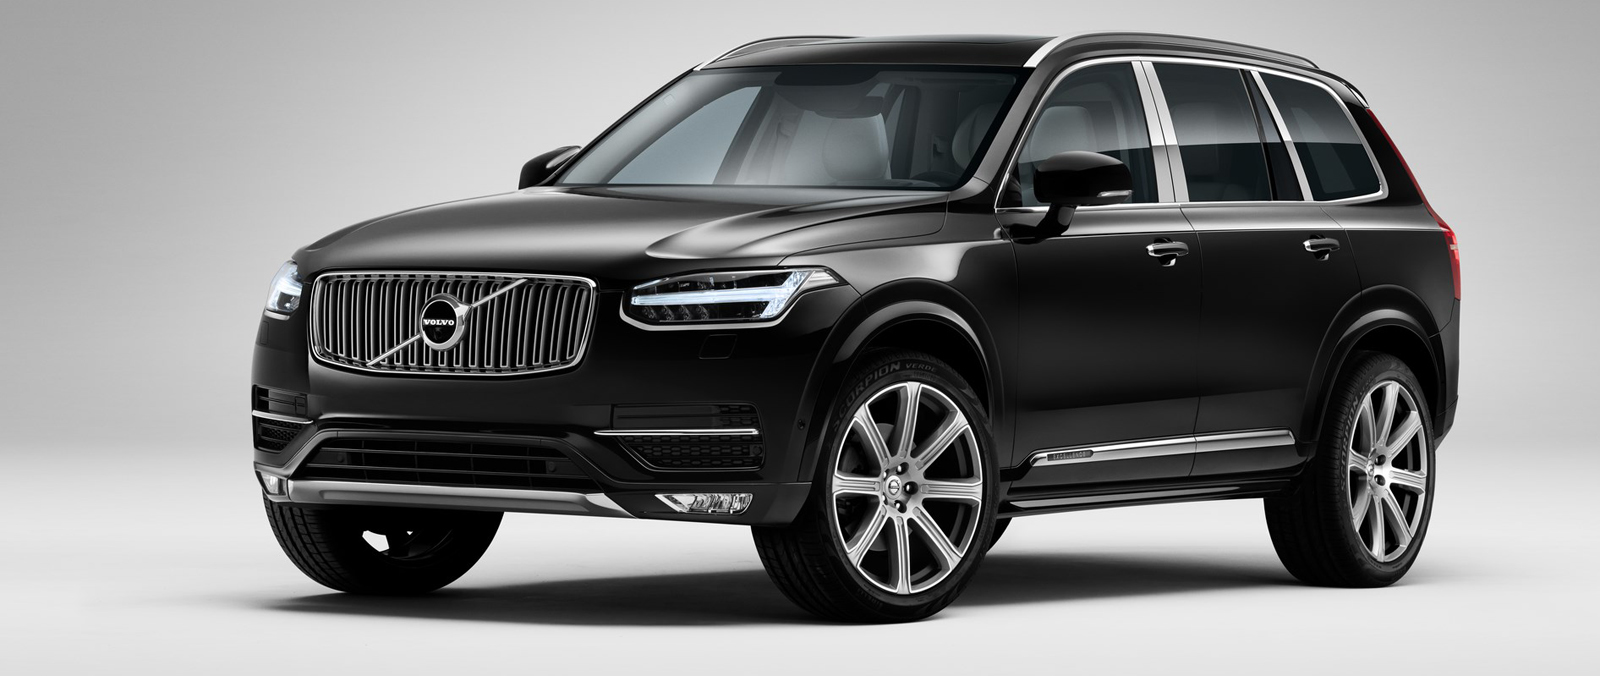 Volvo XC90 Excellence nu ook in Nederland